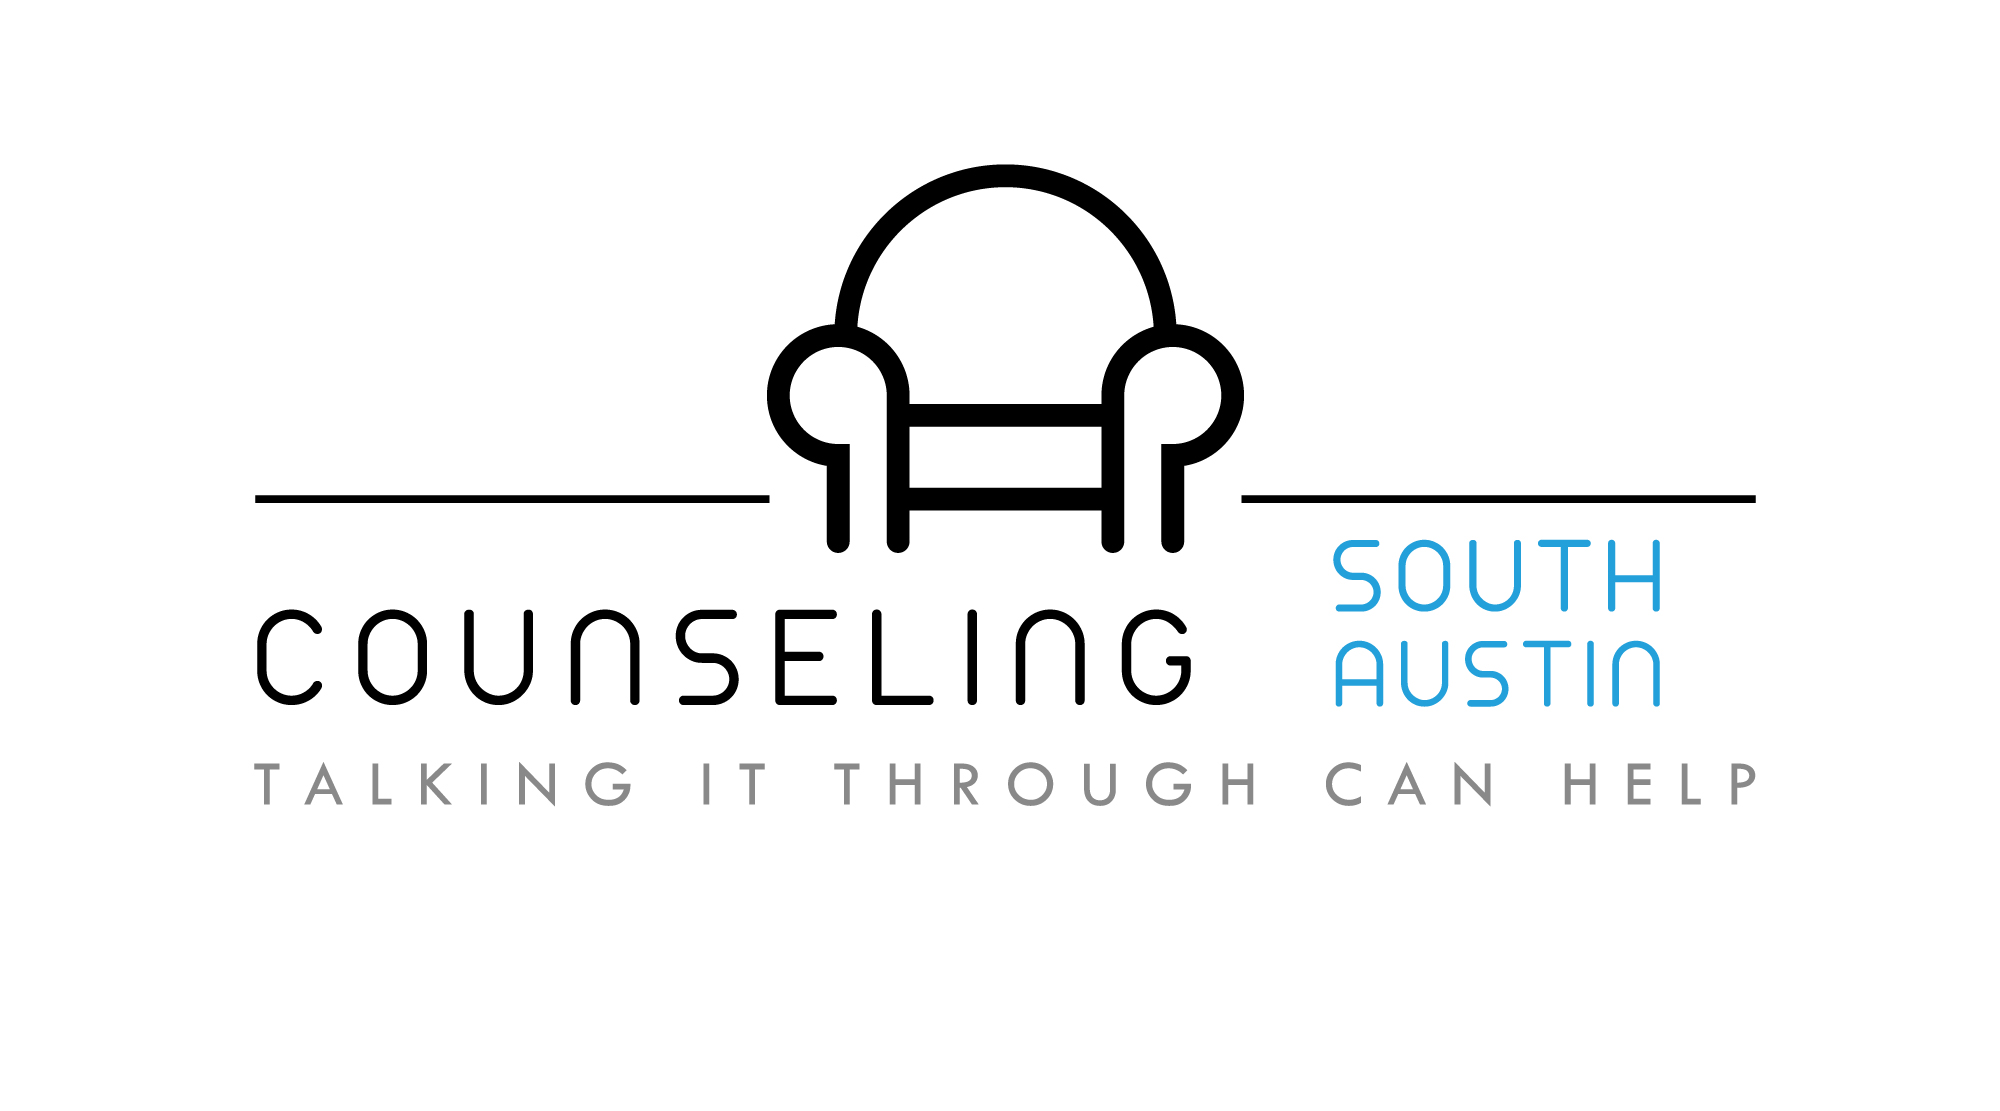 Counseling South Austin